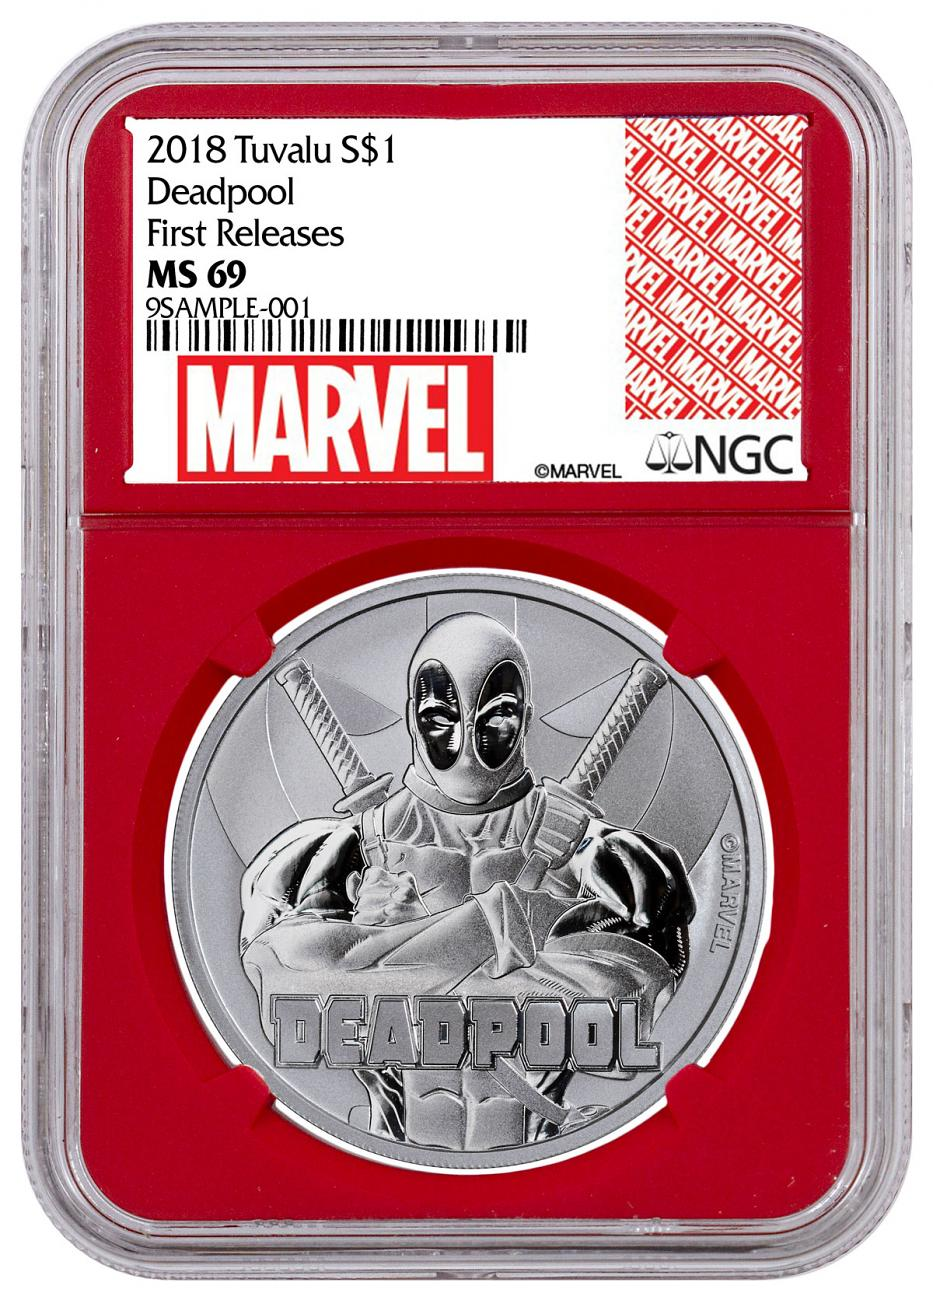 2018 Tuvalu Deadpool 1 oz Silver Marvel Series $1 Coin NGC MS69 FR Red Core Holder Marvel label